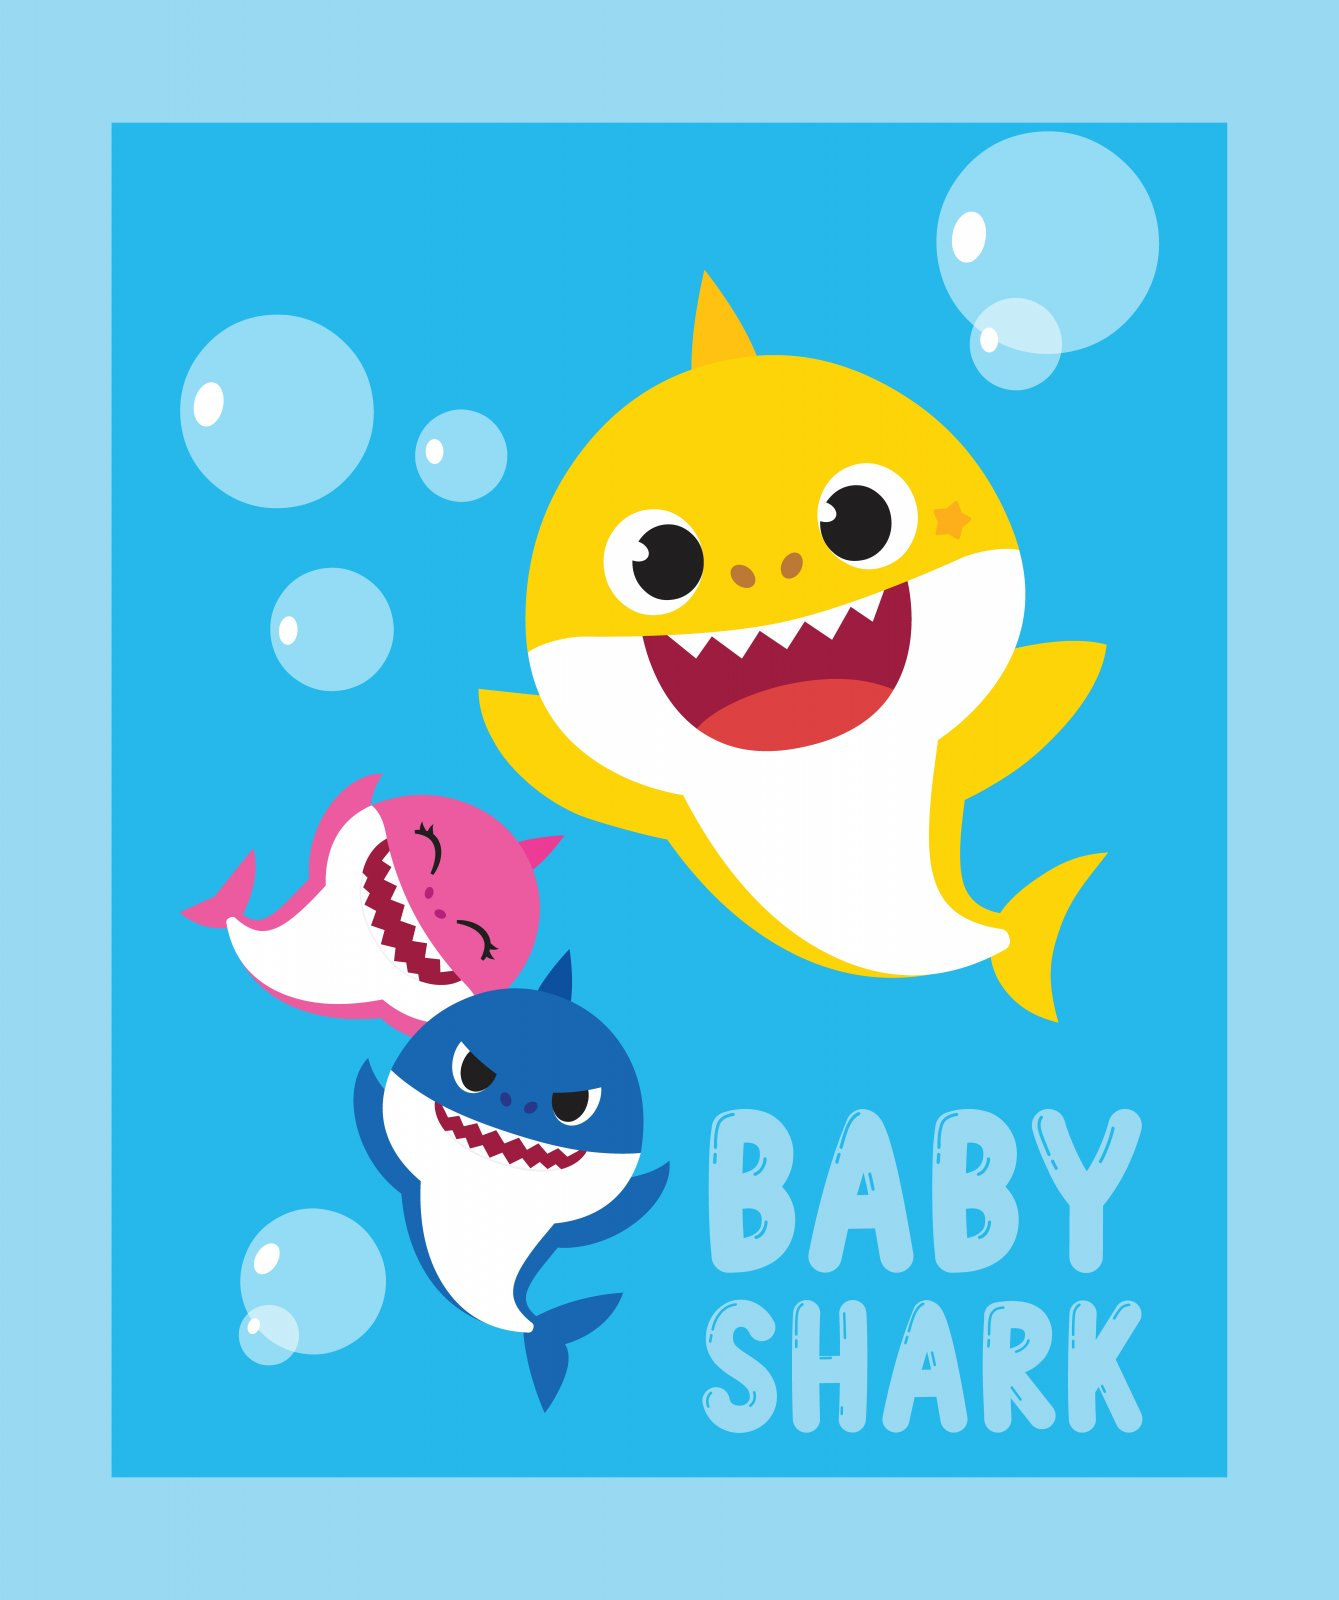 SC-Nickelodeon 74362-A620715 Baby Shark Family Panel